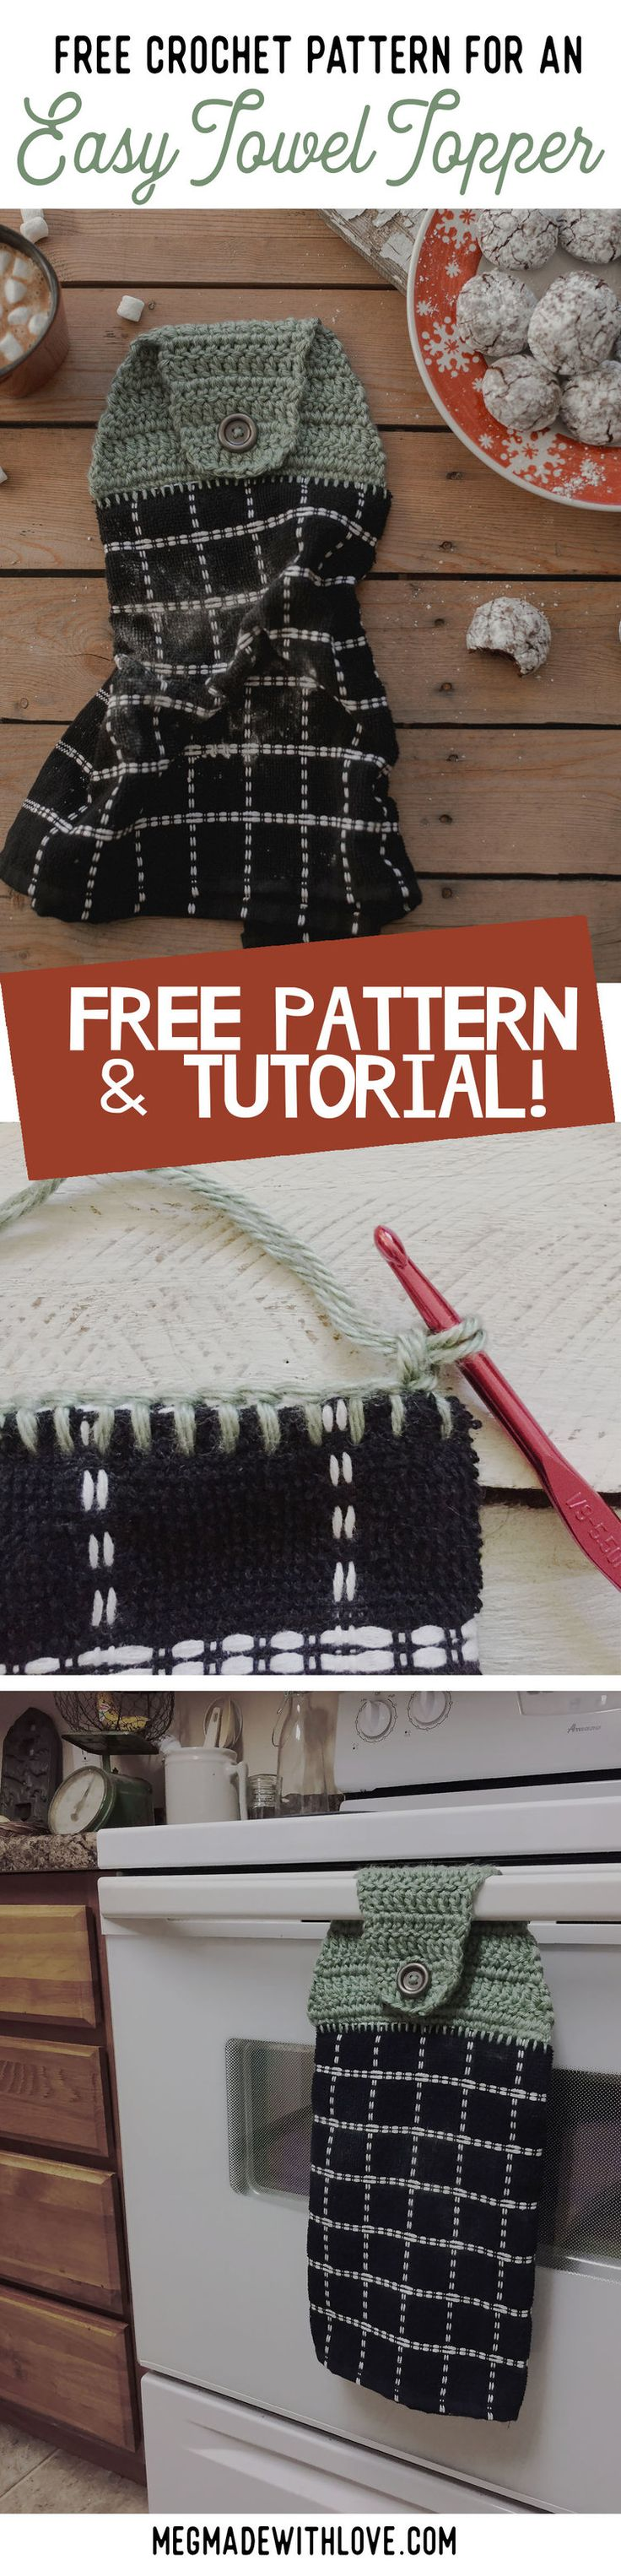 Free Crochet Pattern for a Kitchen Towel Topper - Megmade with Love